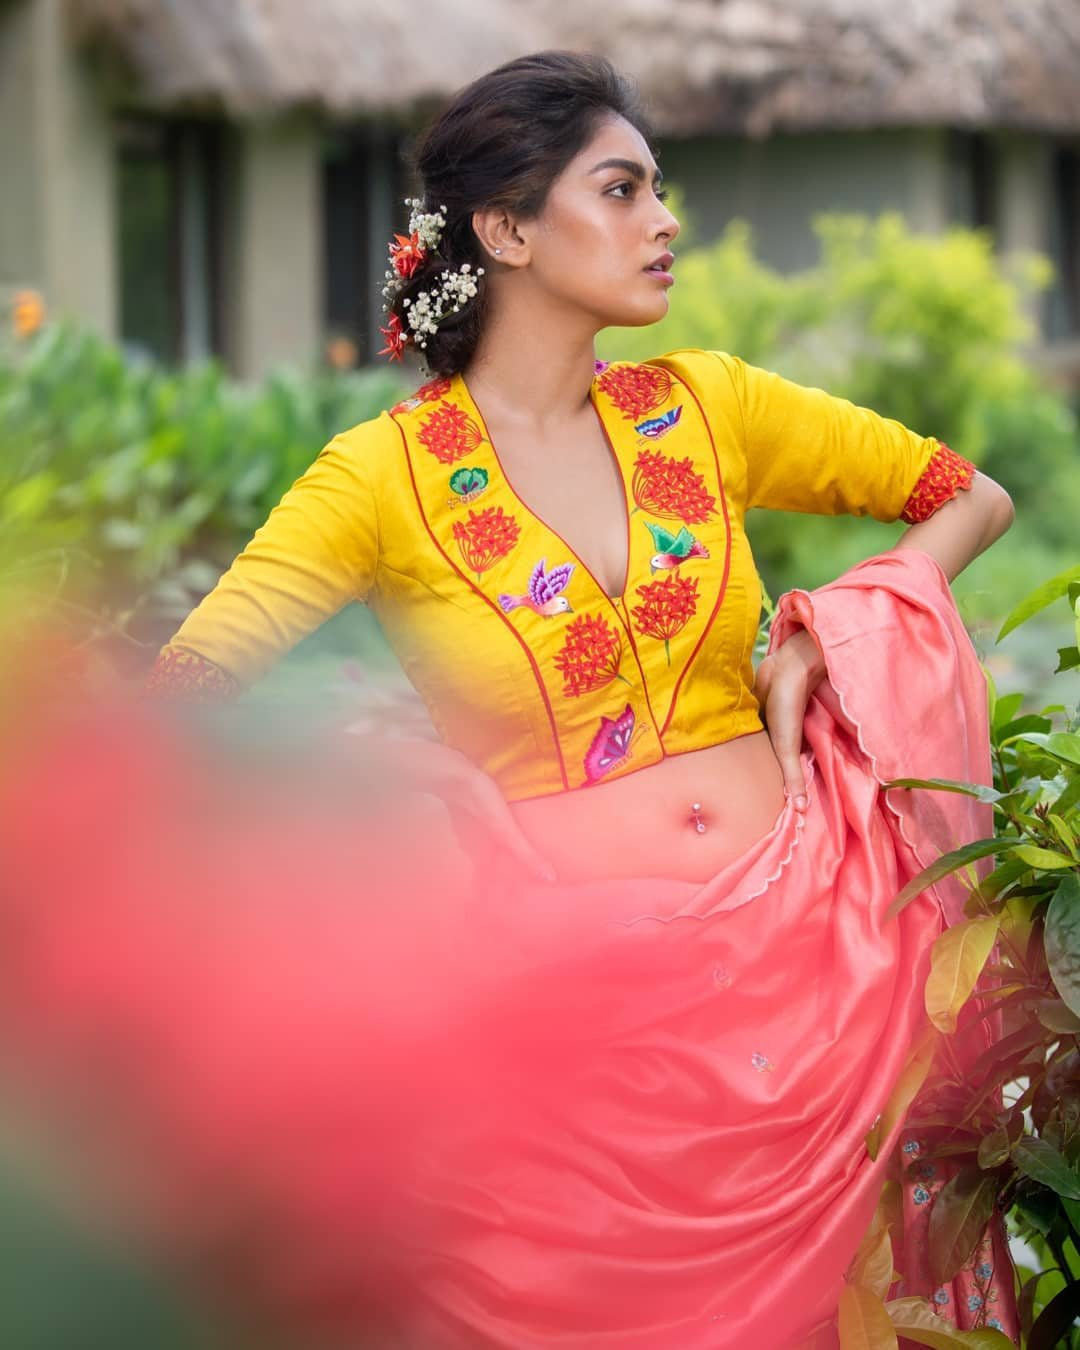 Handpainted yellow blouse with kingfisher-2